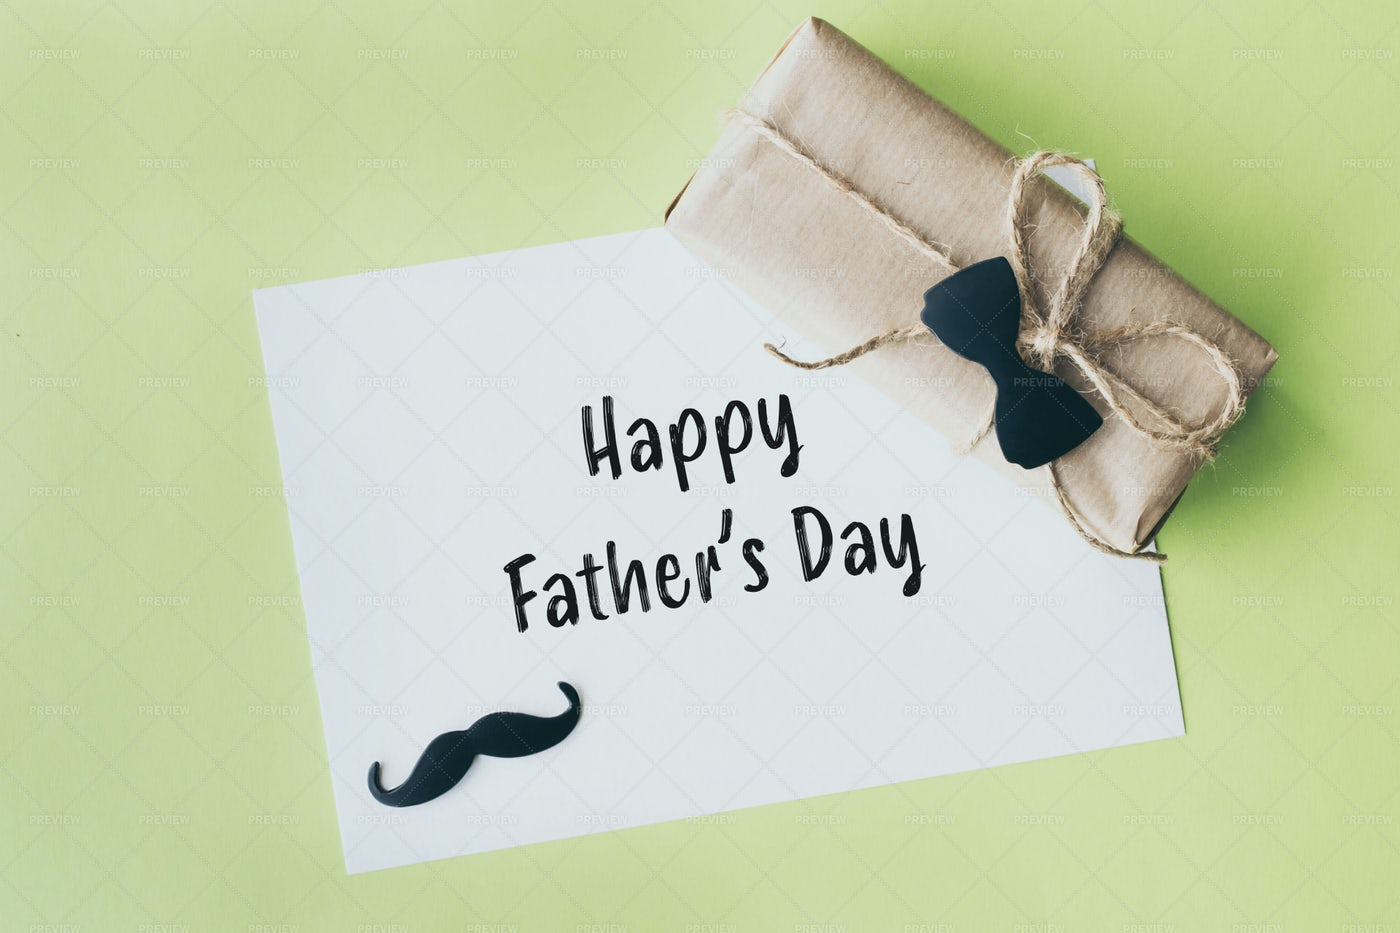 Father's Day Card: Stock Photos